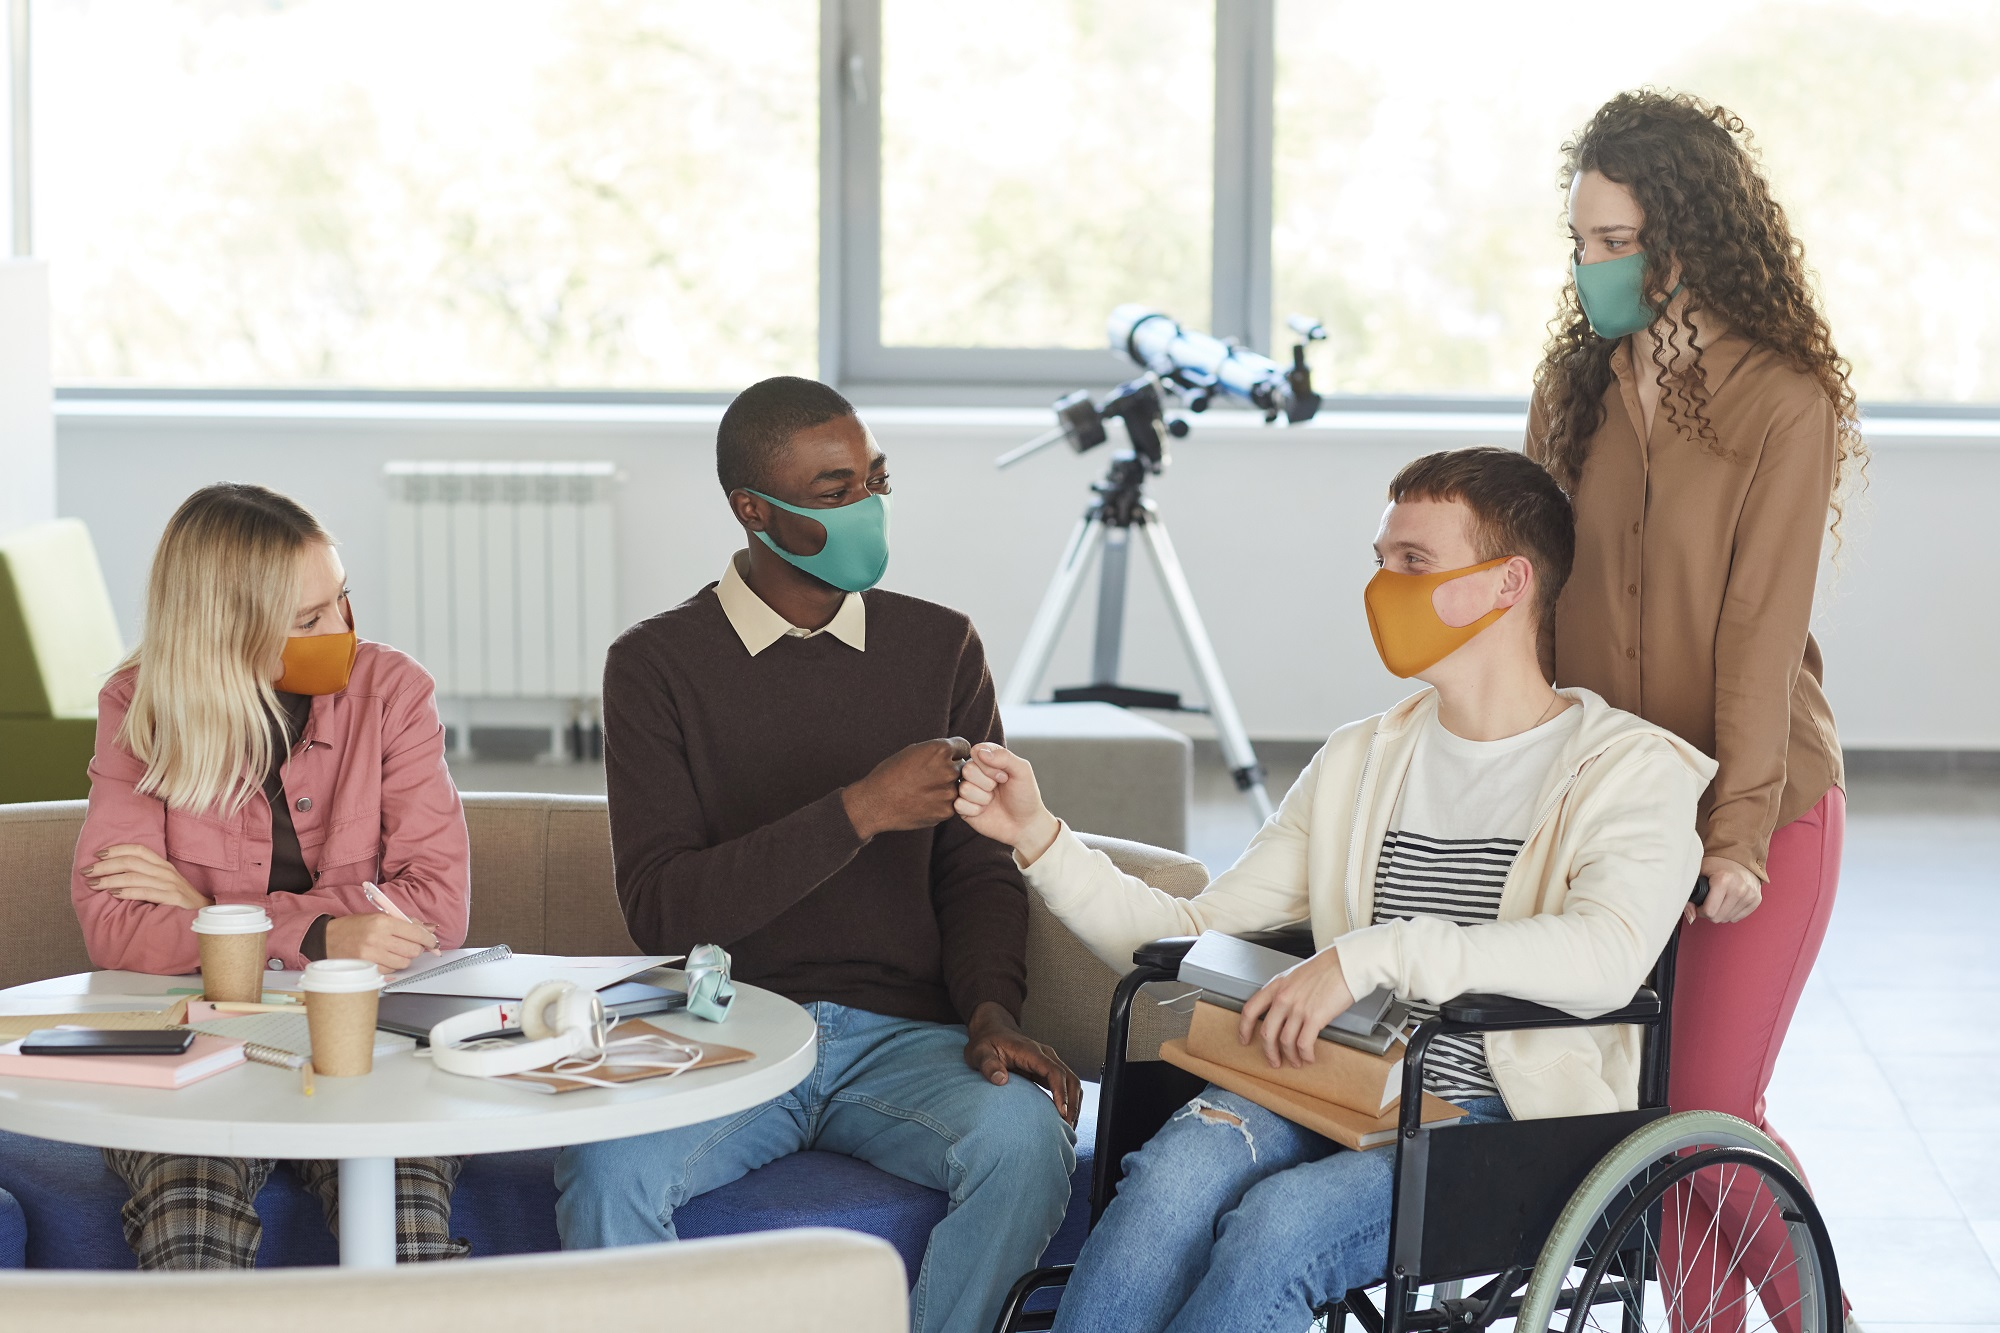 group of students wearing masks in college with young man using wheelchair